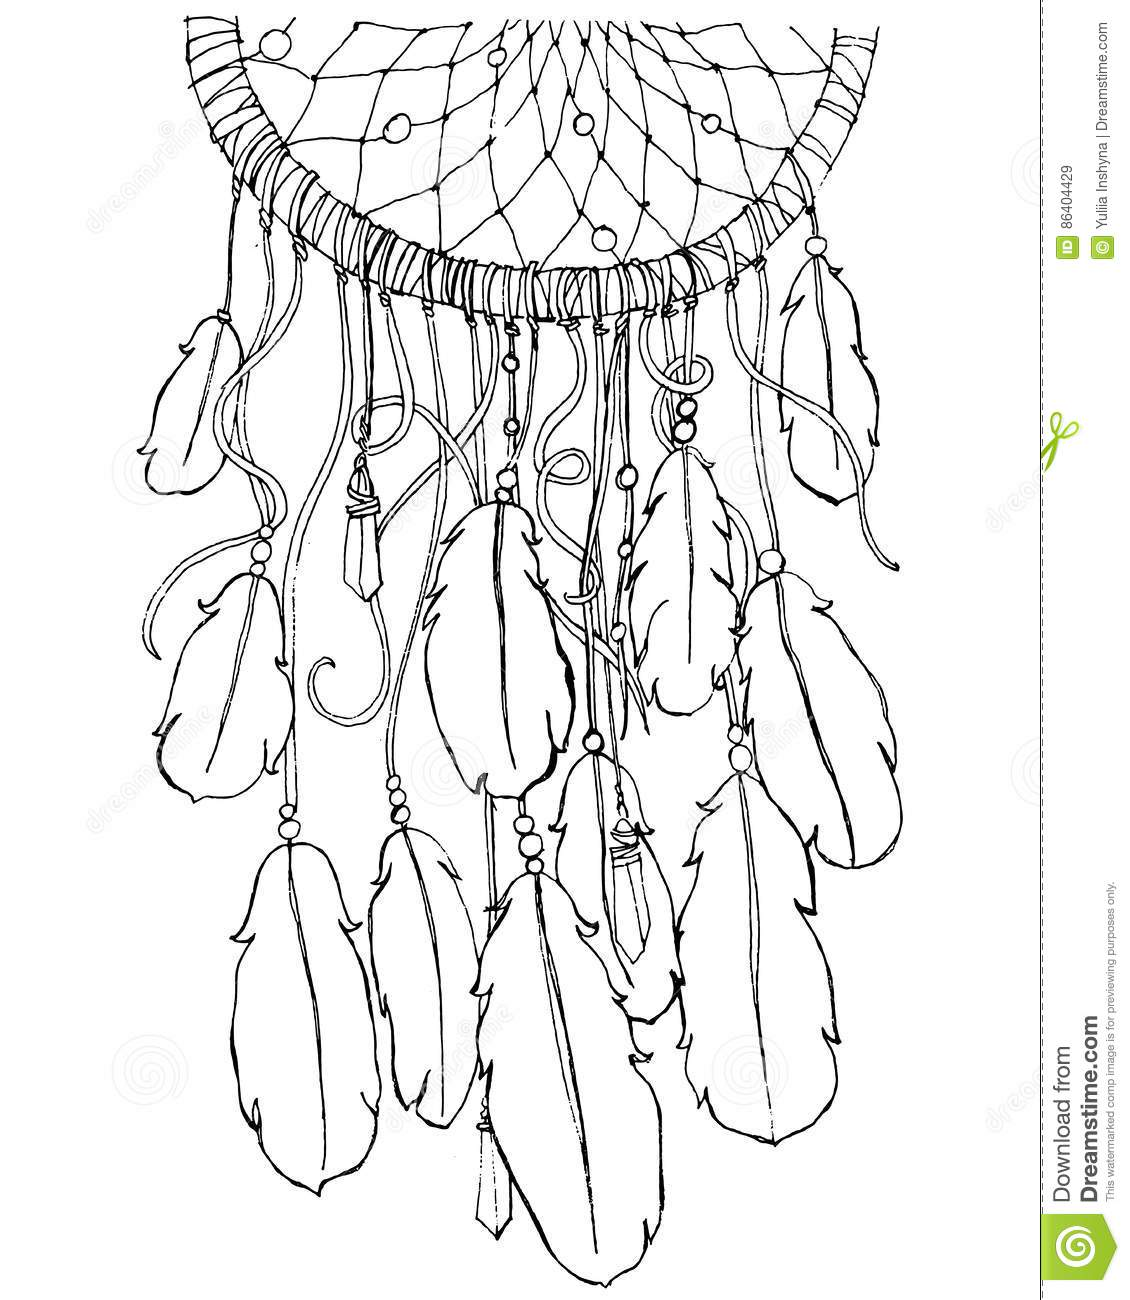 Dream Catcher Coloring Page Stock Vector Illustration Of Card Black 86404429